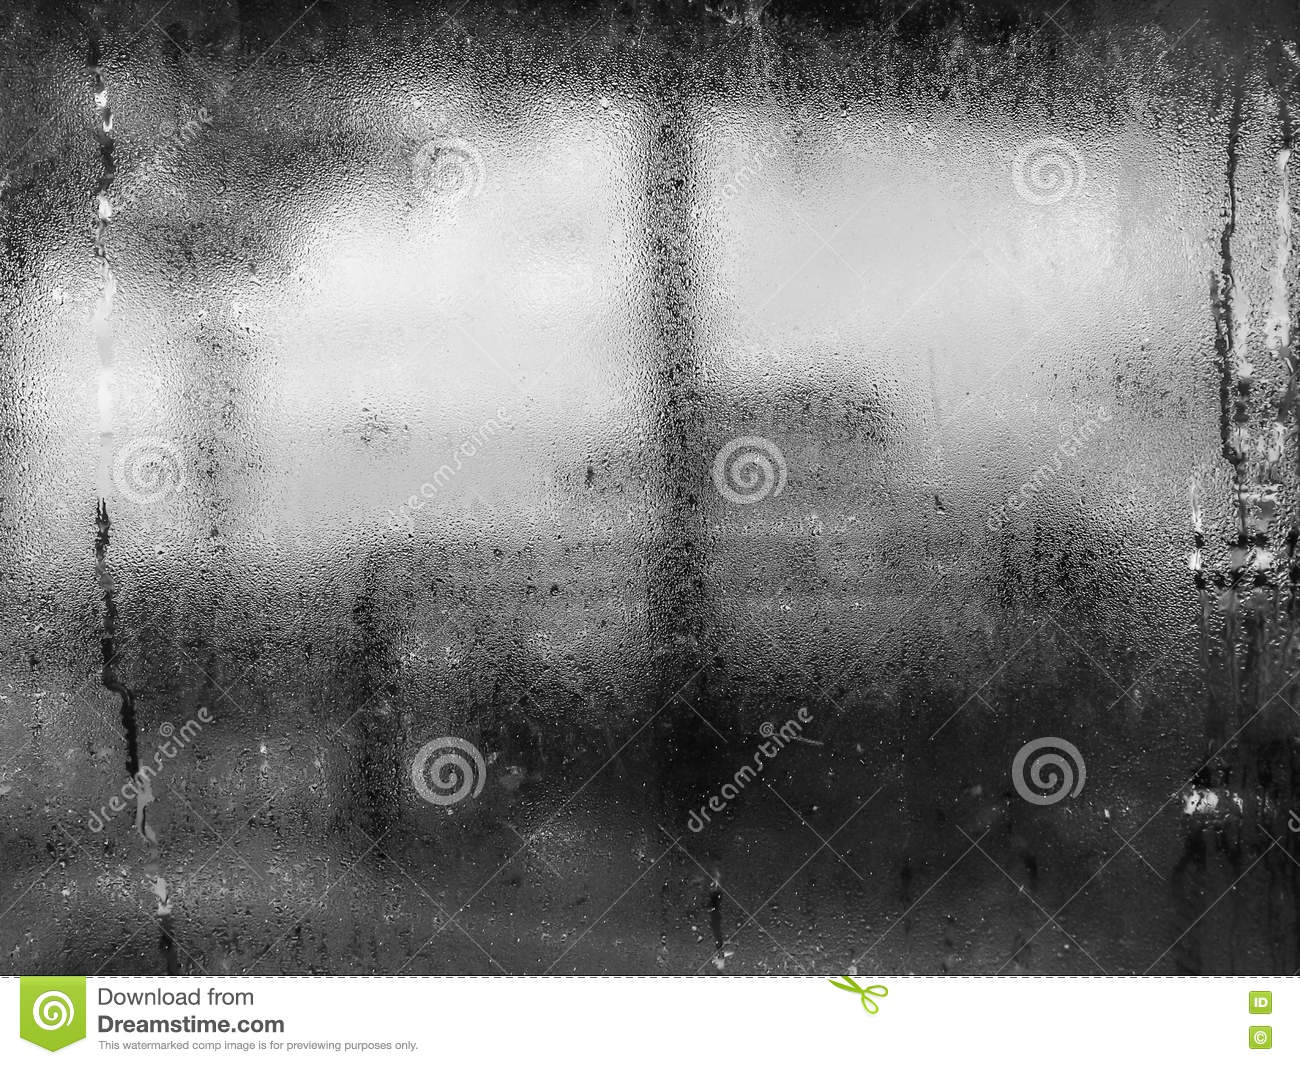 Black and white tone of water drops from home condensation on a